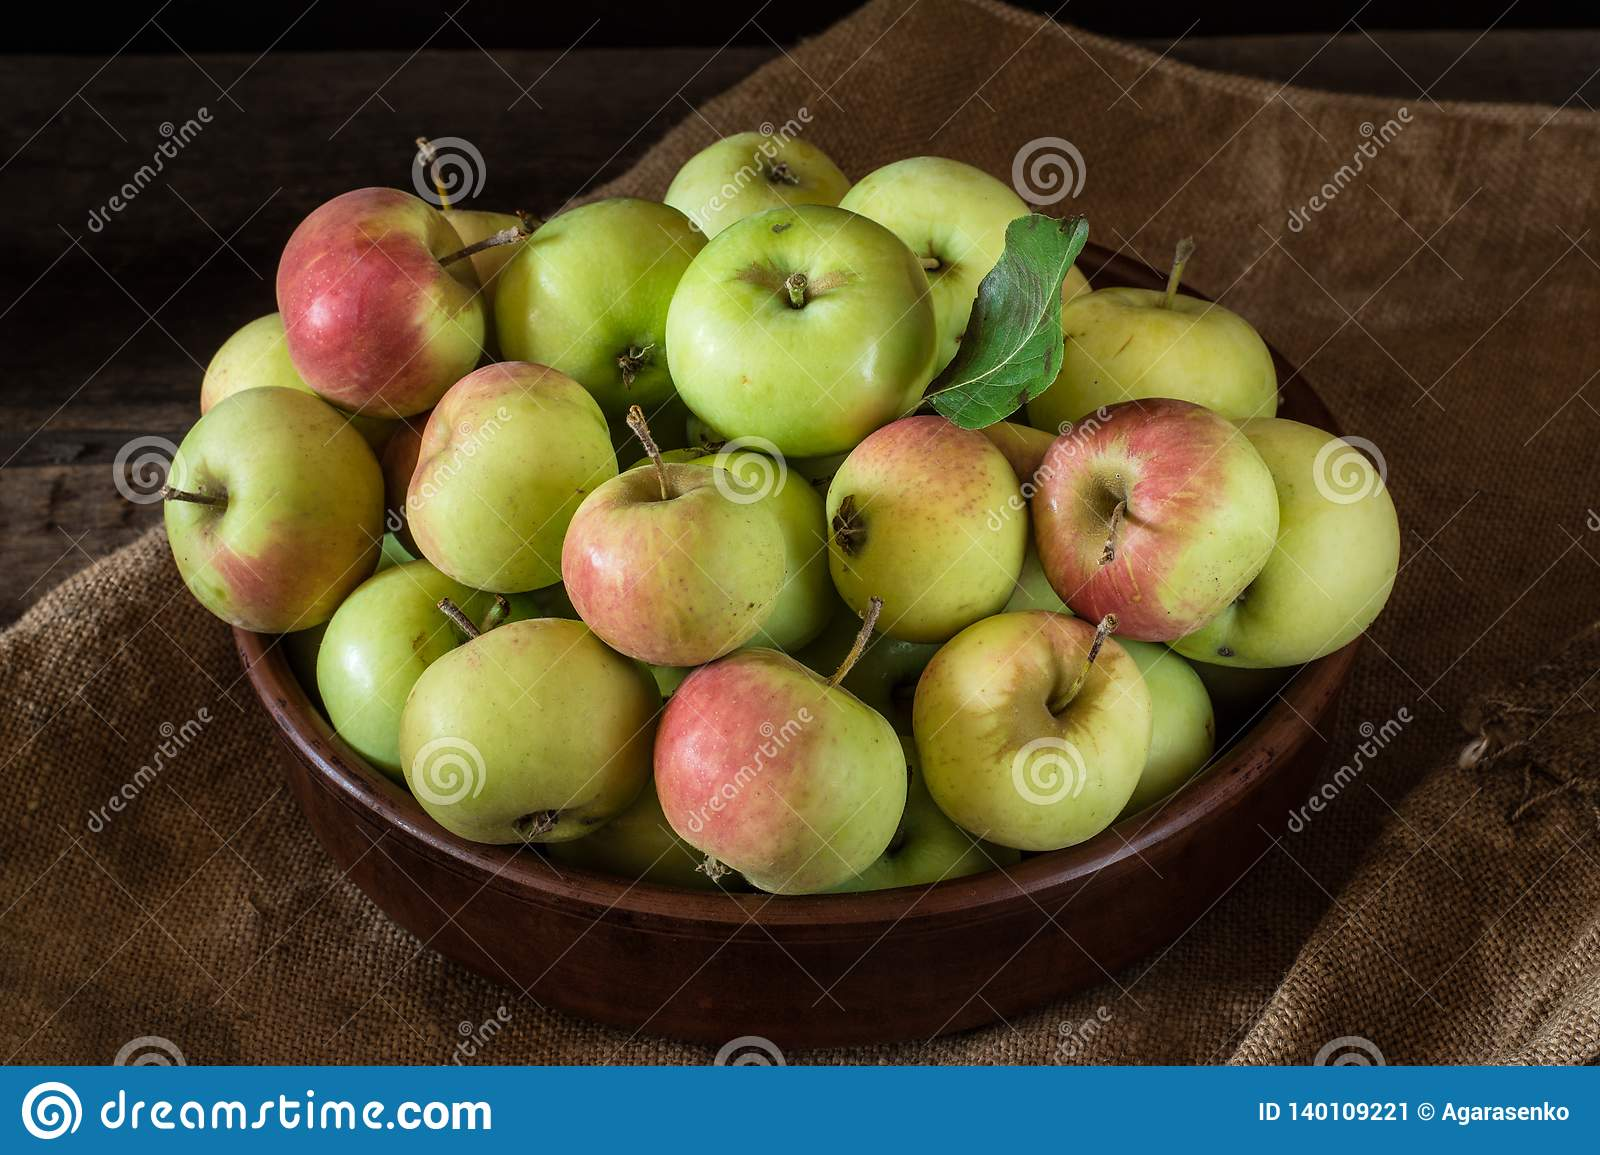 Ripe red and green apples on wooden background. Apples in bowl. Garden fruits. Autumn fruits. Autumn harvest.